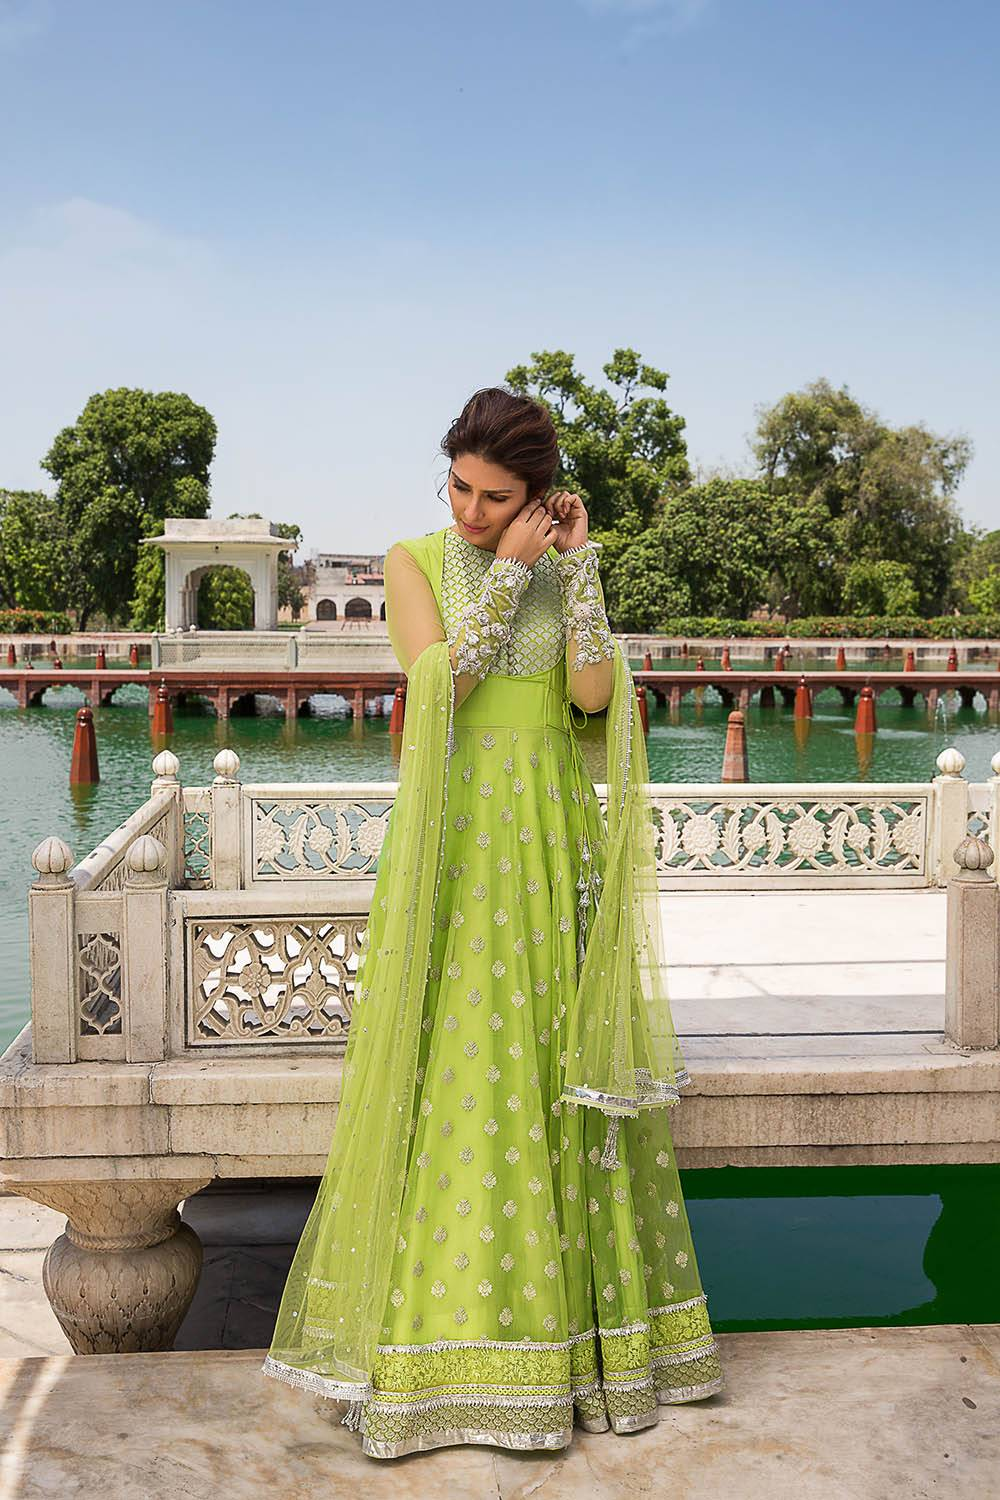 Best Pakistani Wedding Dresses And Frocks For Women From The Top Collections Online Shopping In Pakistan